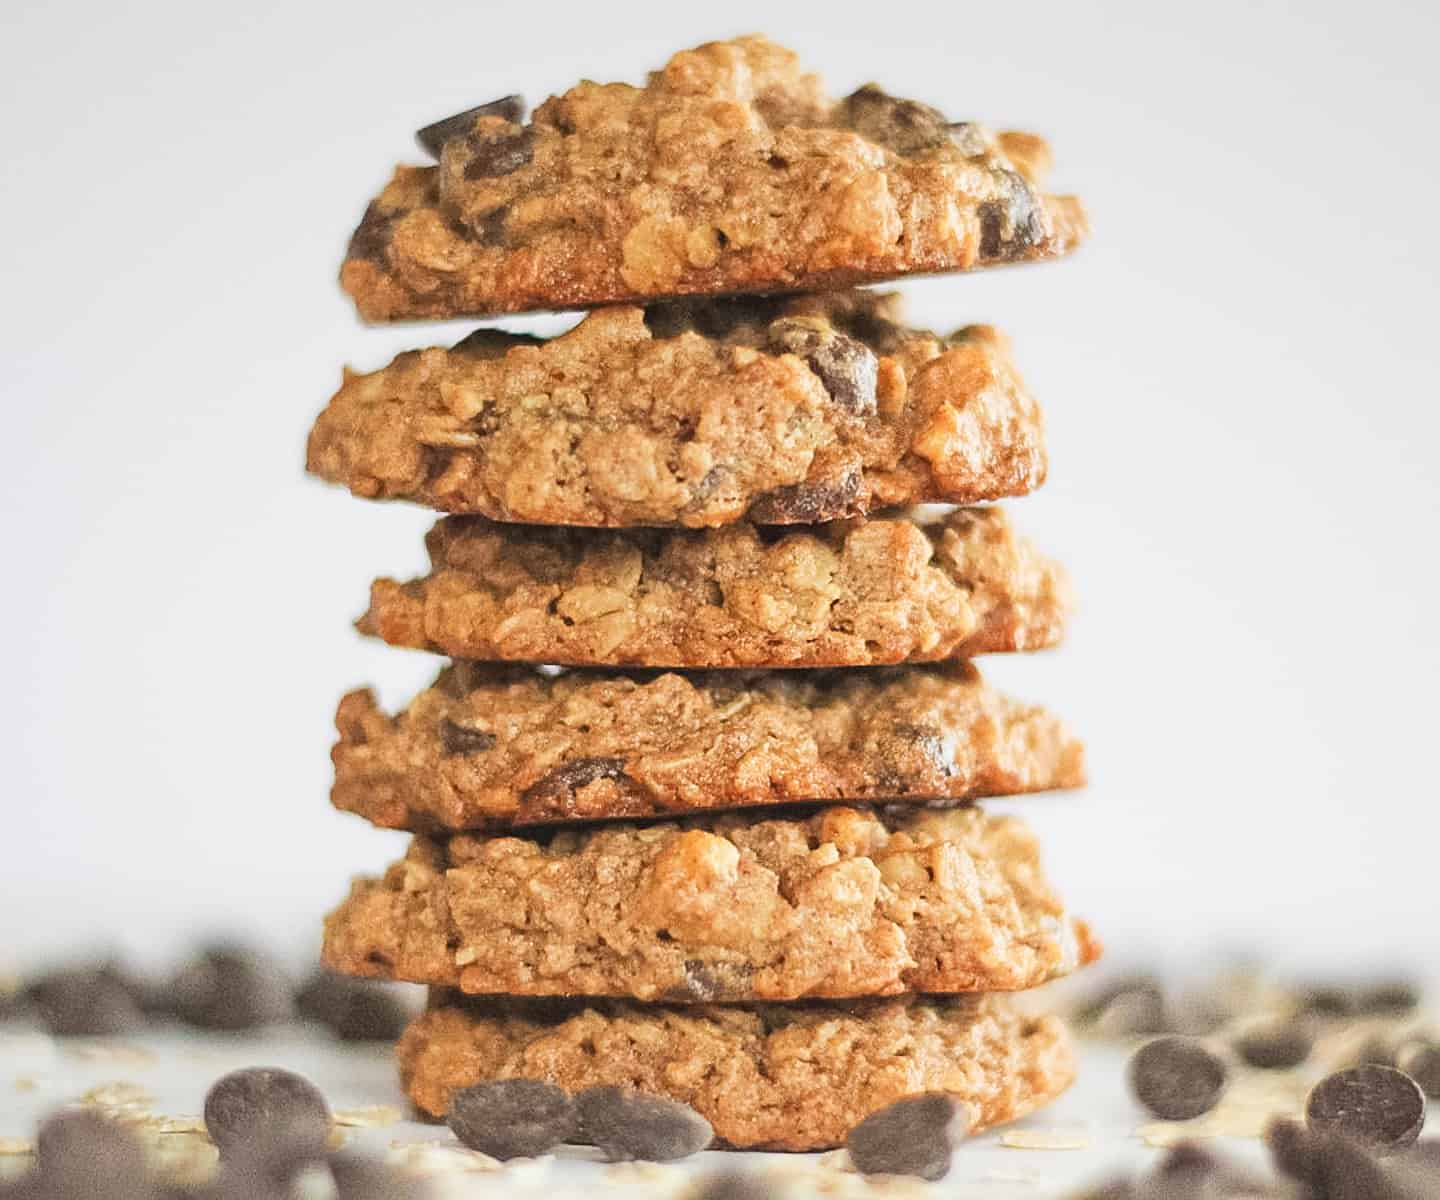 Stack of gluten free chocolate chip oatmeal cookies.